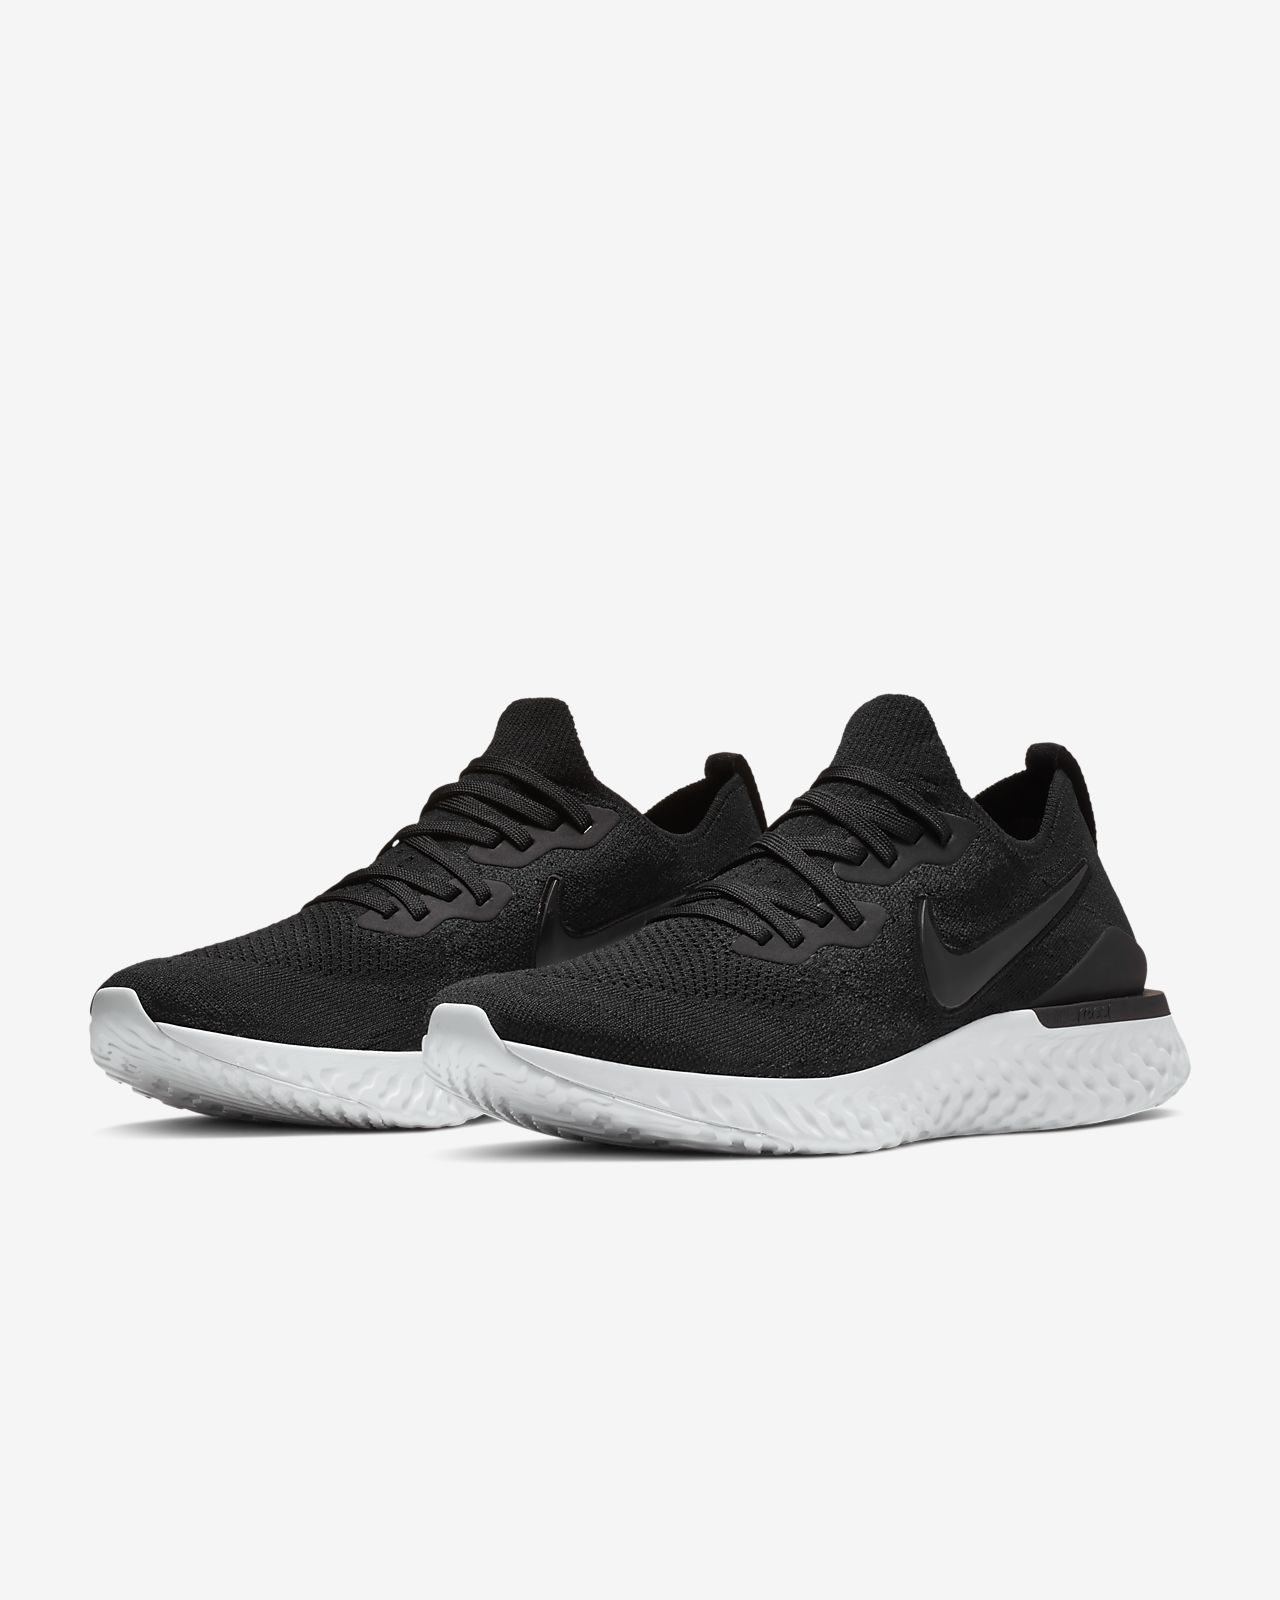 958b8c731c28b Nike Epic React Flyknit 2 Men s Running Shoe. Nike.com ZA